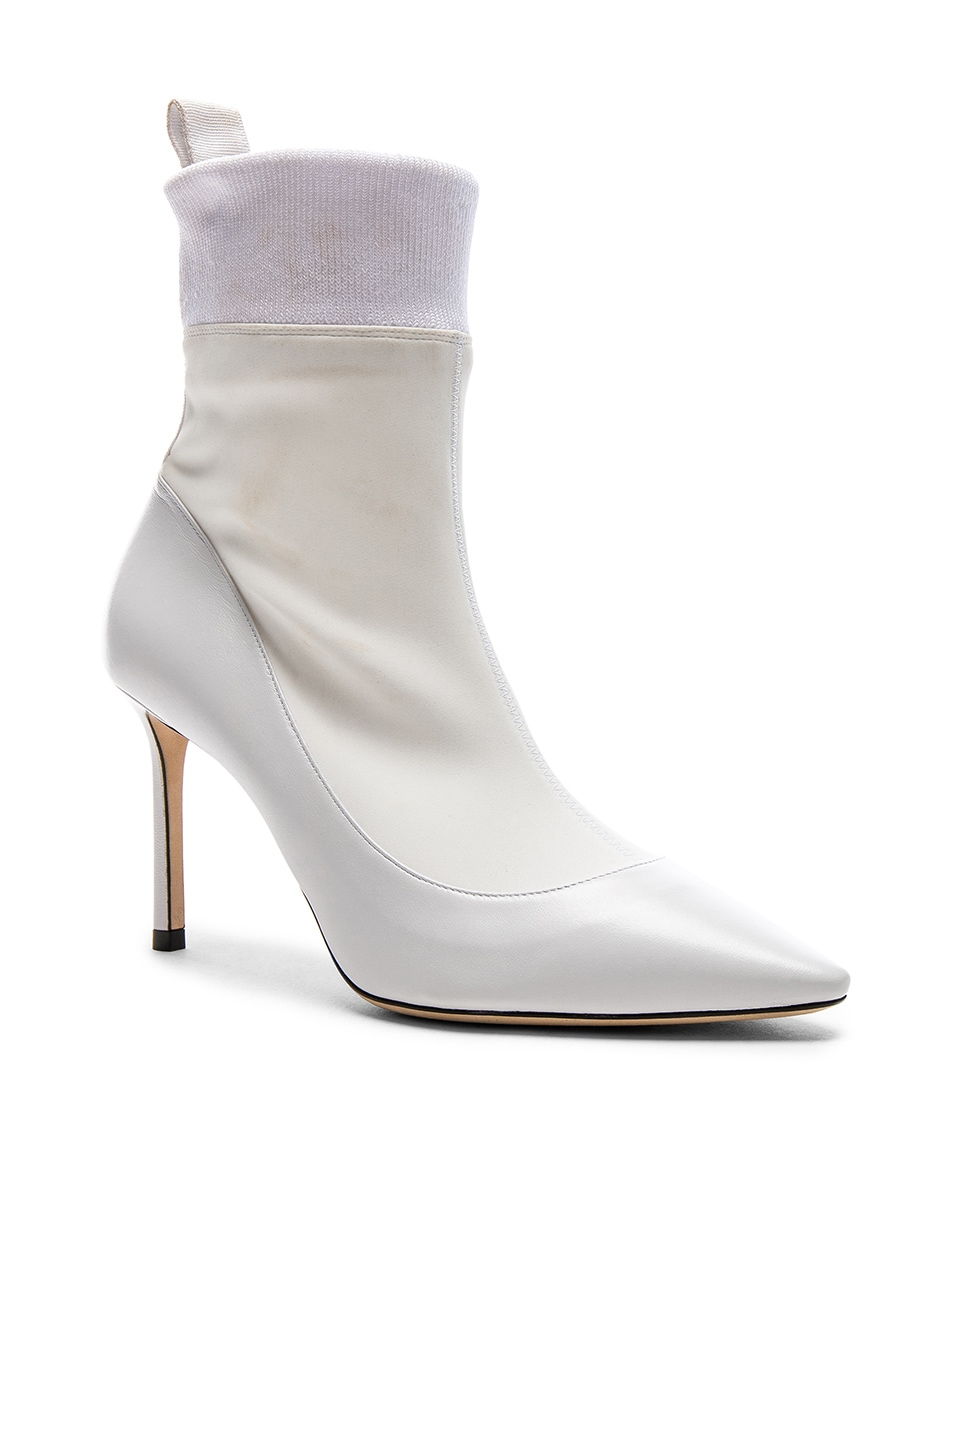 Image 2 of Jimmy Choo Brandon 85 Leather Boots in White